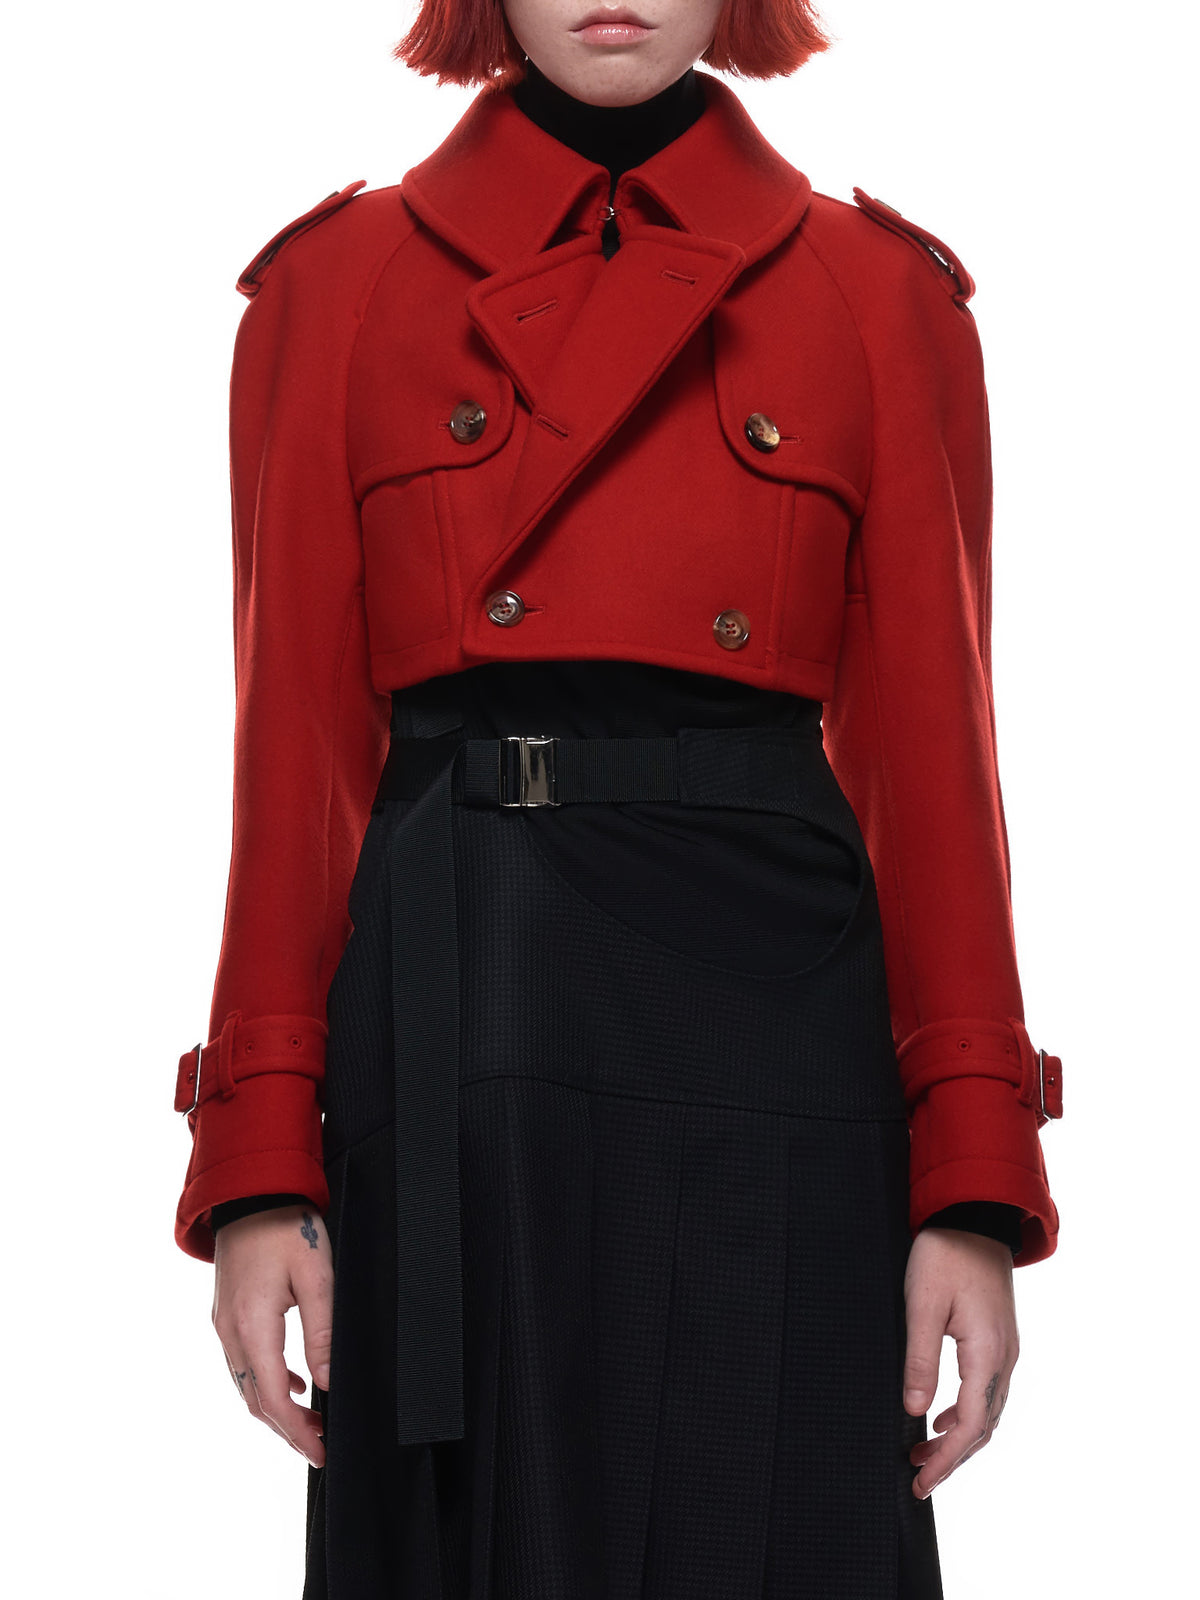 Cropped Band Jacket (JF-J043-051-RED)